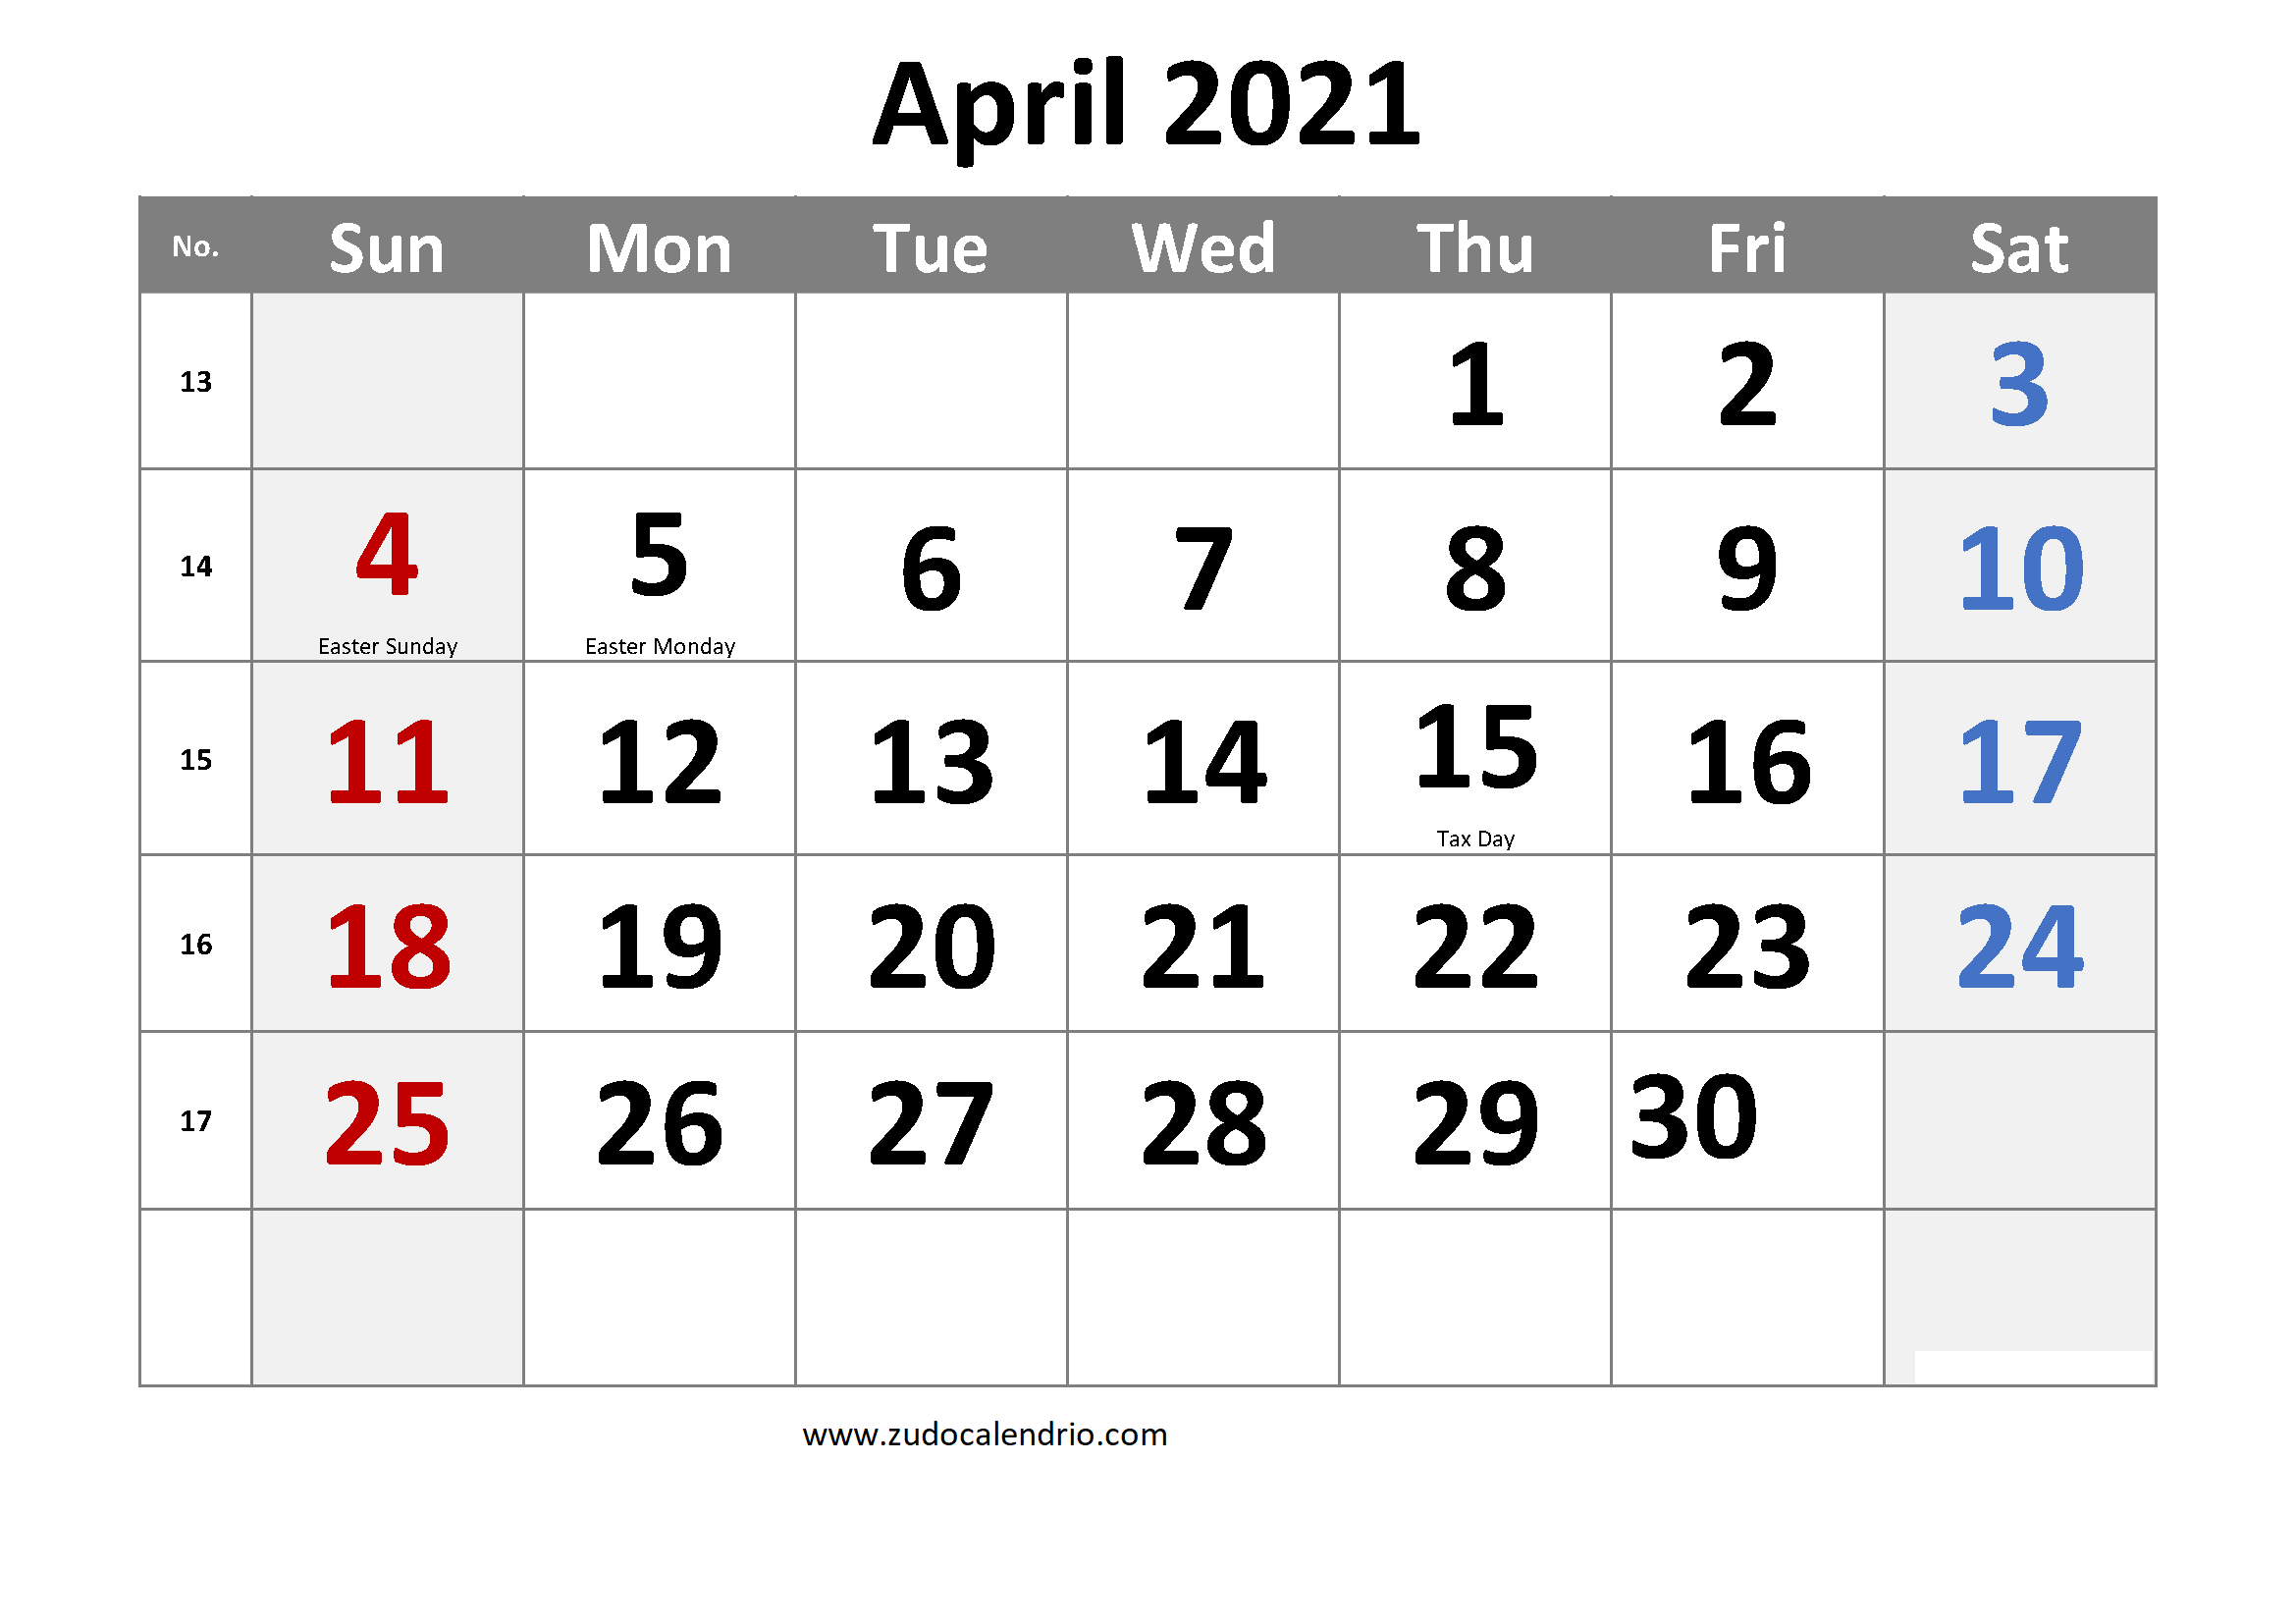 April 2021 Easter Sunday 2021 In 2021 Easter Sunday Will Fall On April 1st 2021 Which Is Also April Fools Day As Well